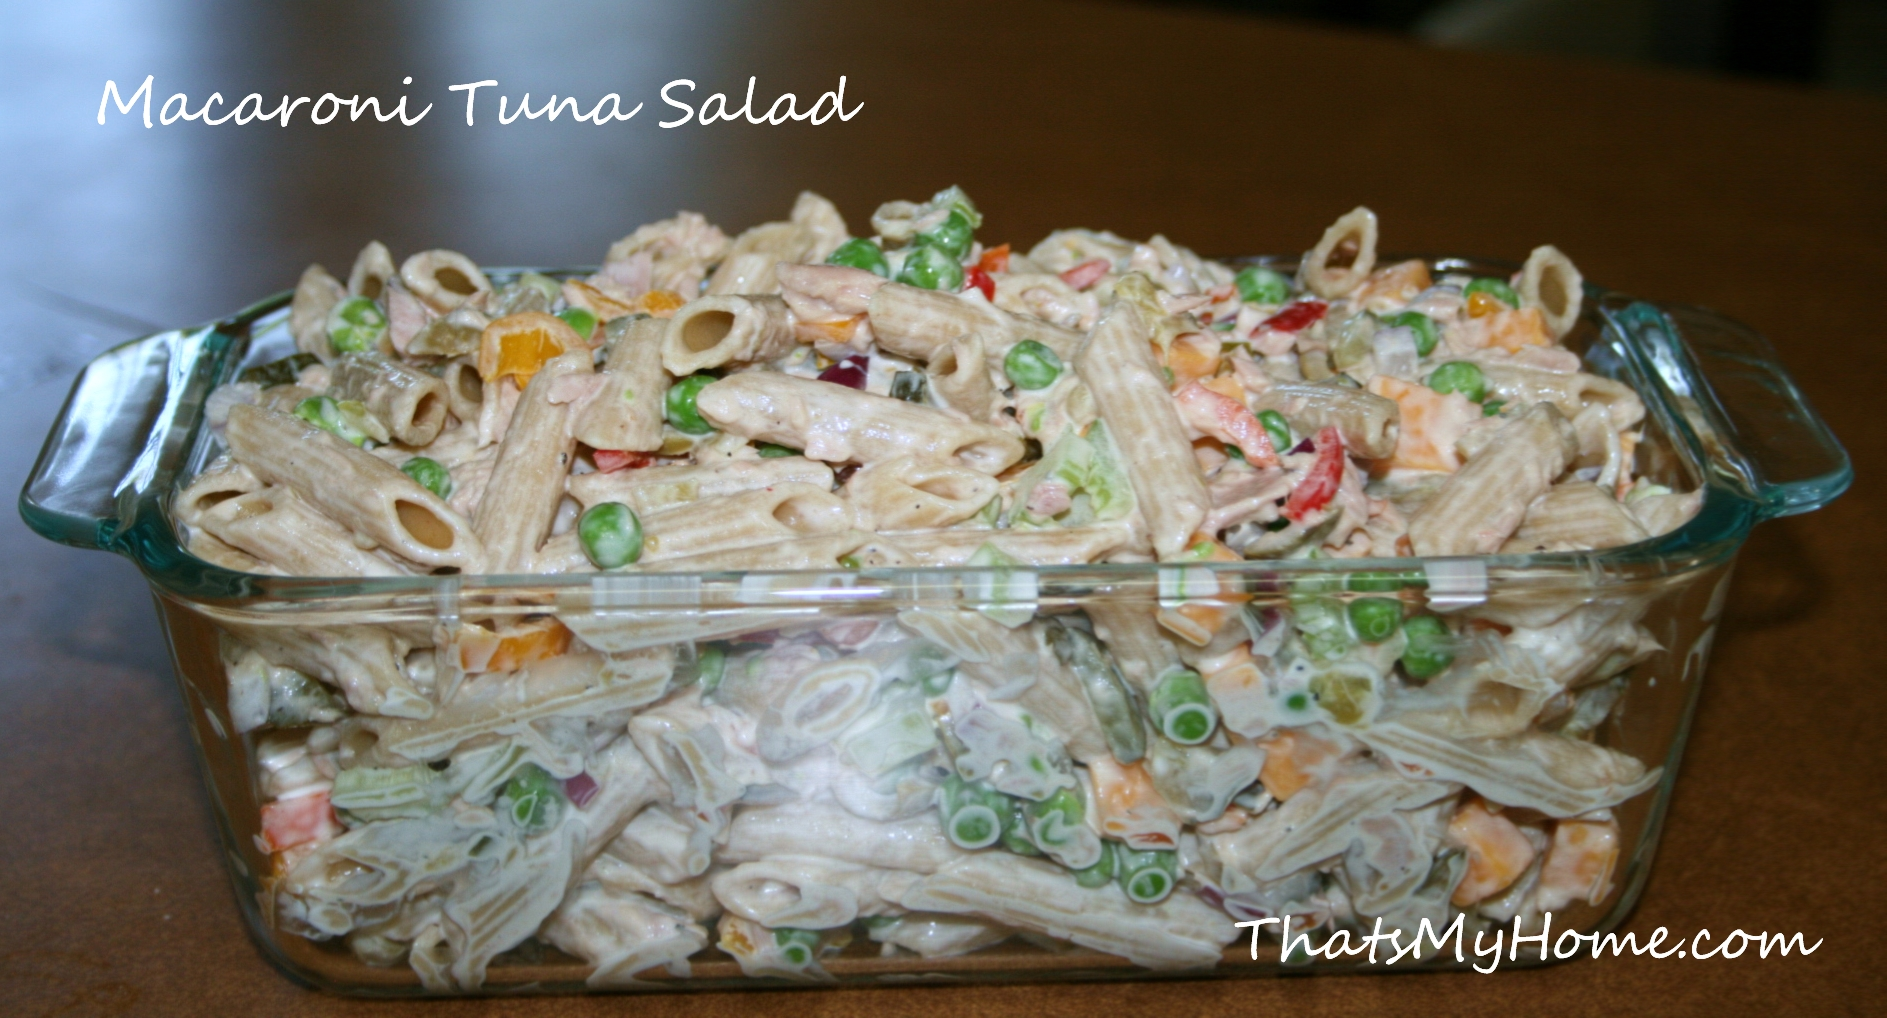 Macaroni Tuna Salad Recipes Food And Cooking